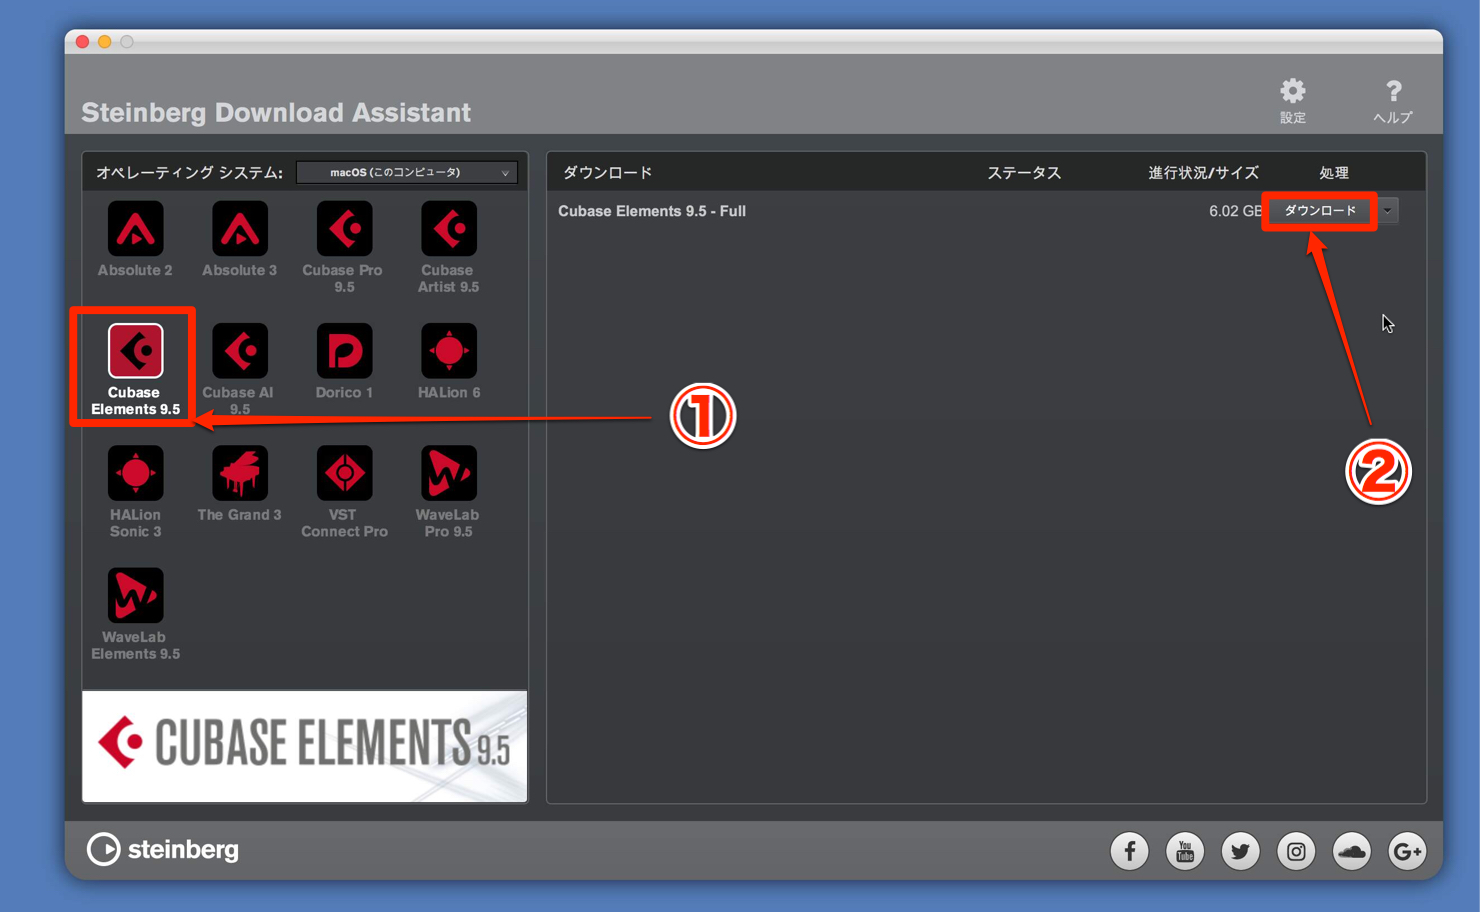 cubase-pro-elements-9-5-trial-8